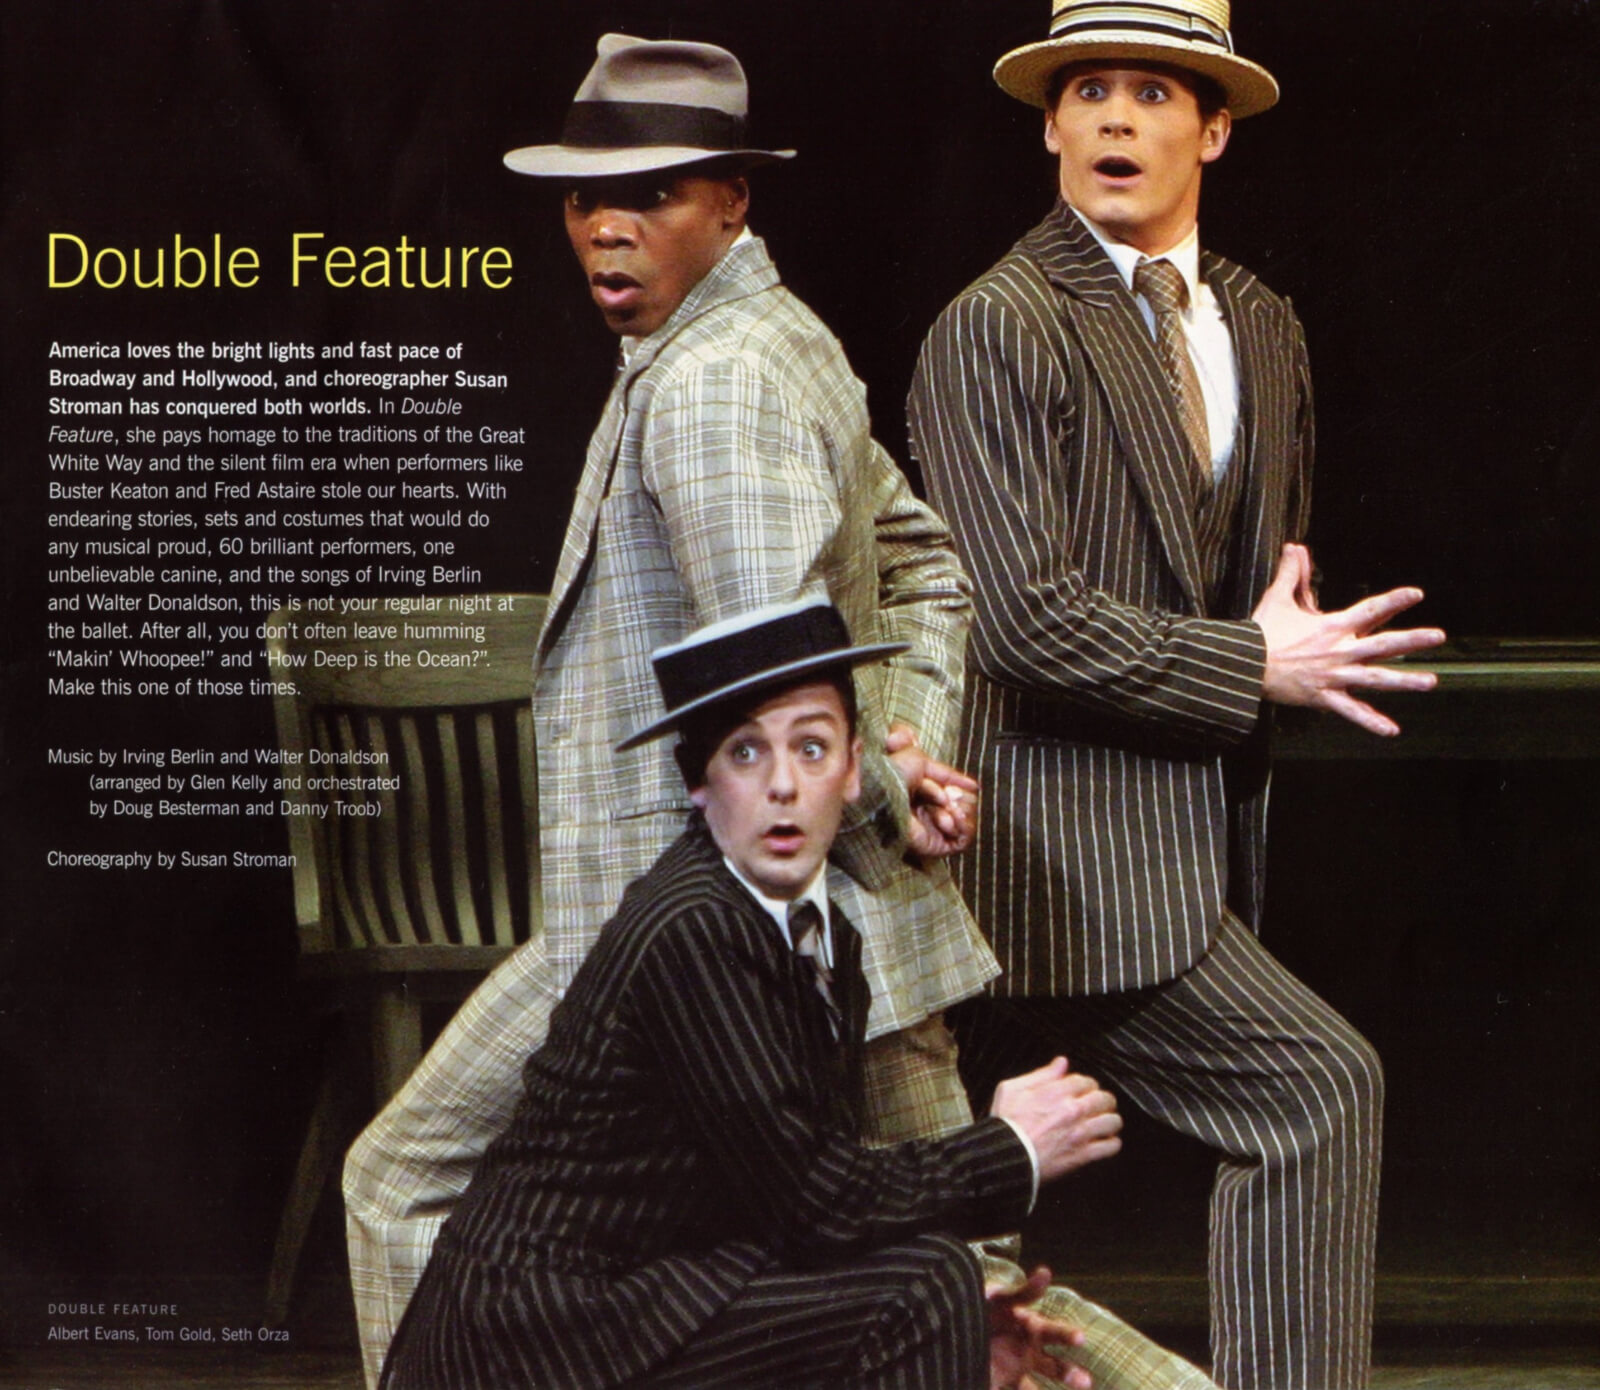 """Albert Evan, Tom Gold and Seth Orza dancing to """"My Baby Just Cares For Me"""" in Makin' Whoopee. (all dressed in suits and wearing hats)."""